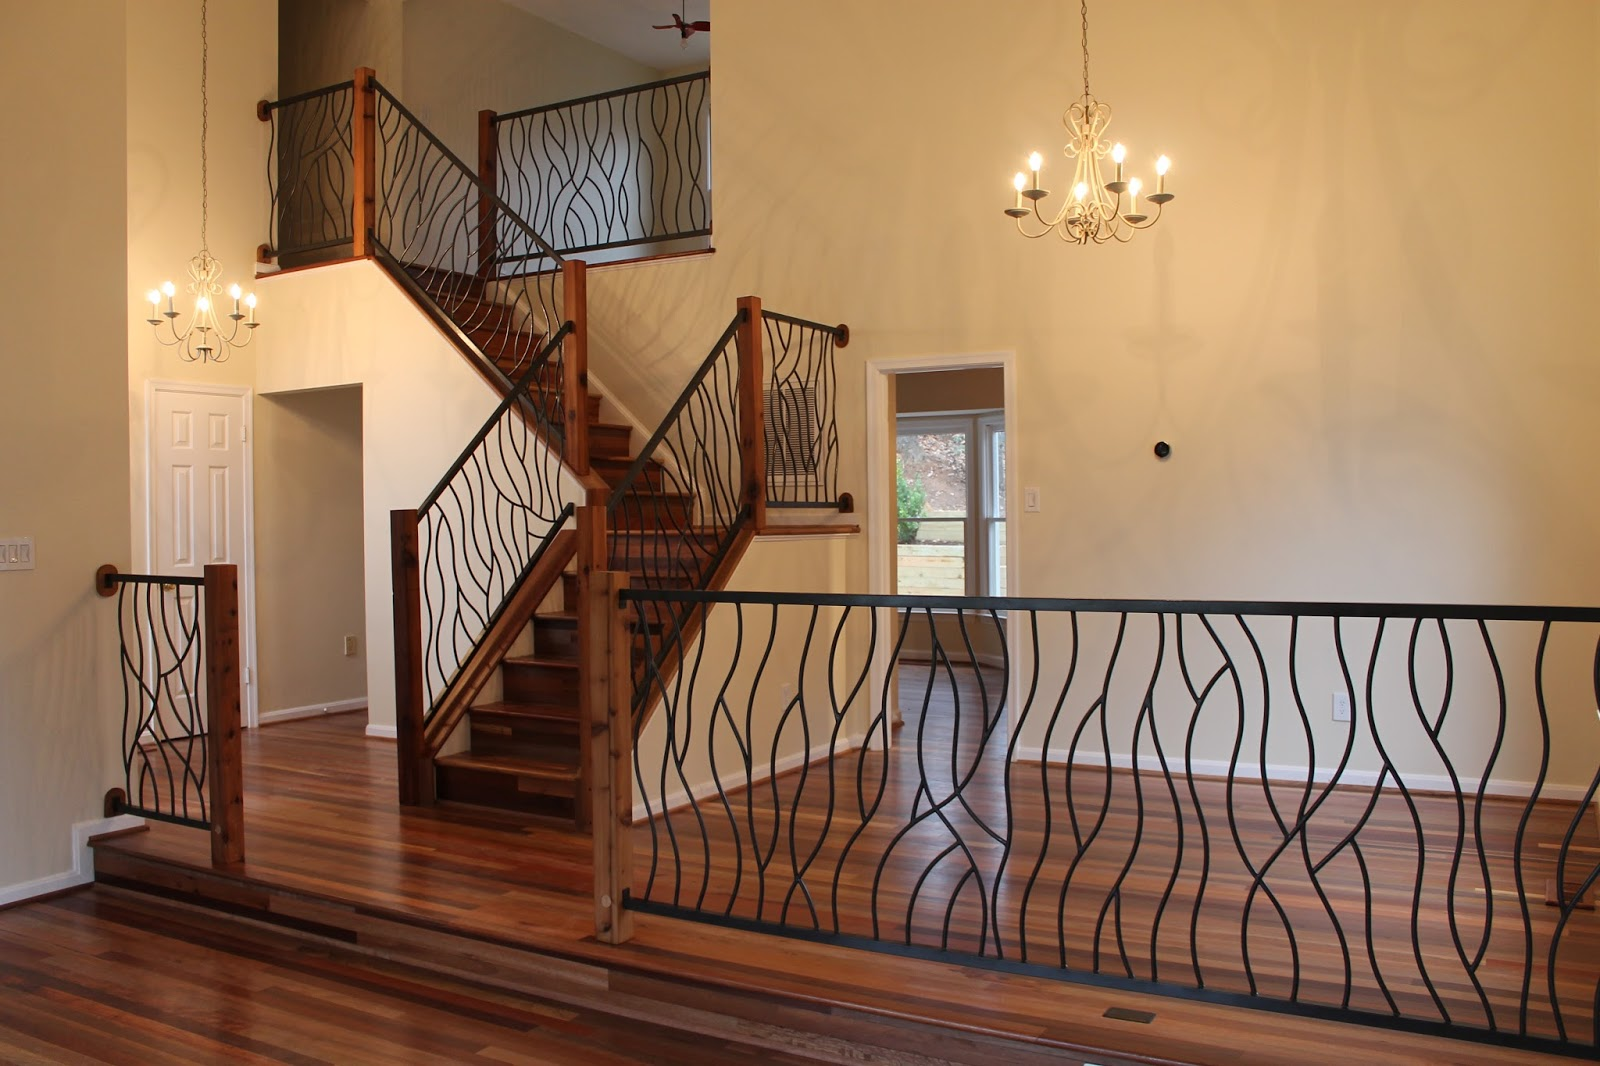 15 Wrought Iron Balusters Design Ideas